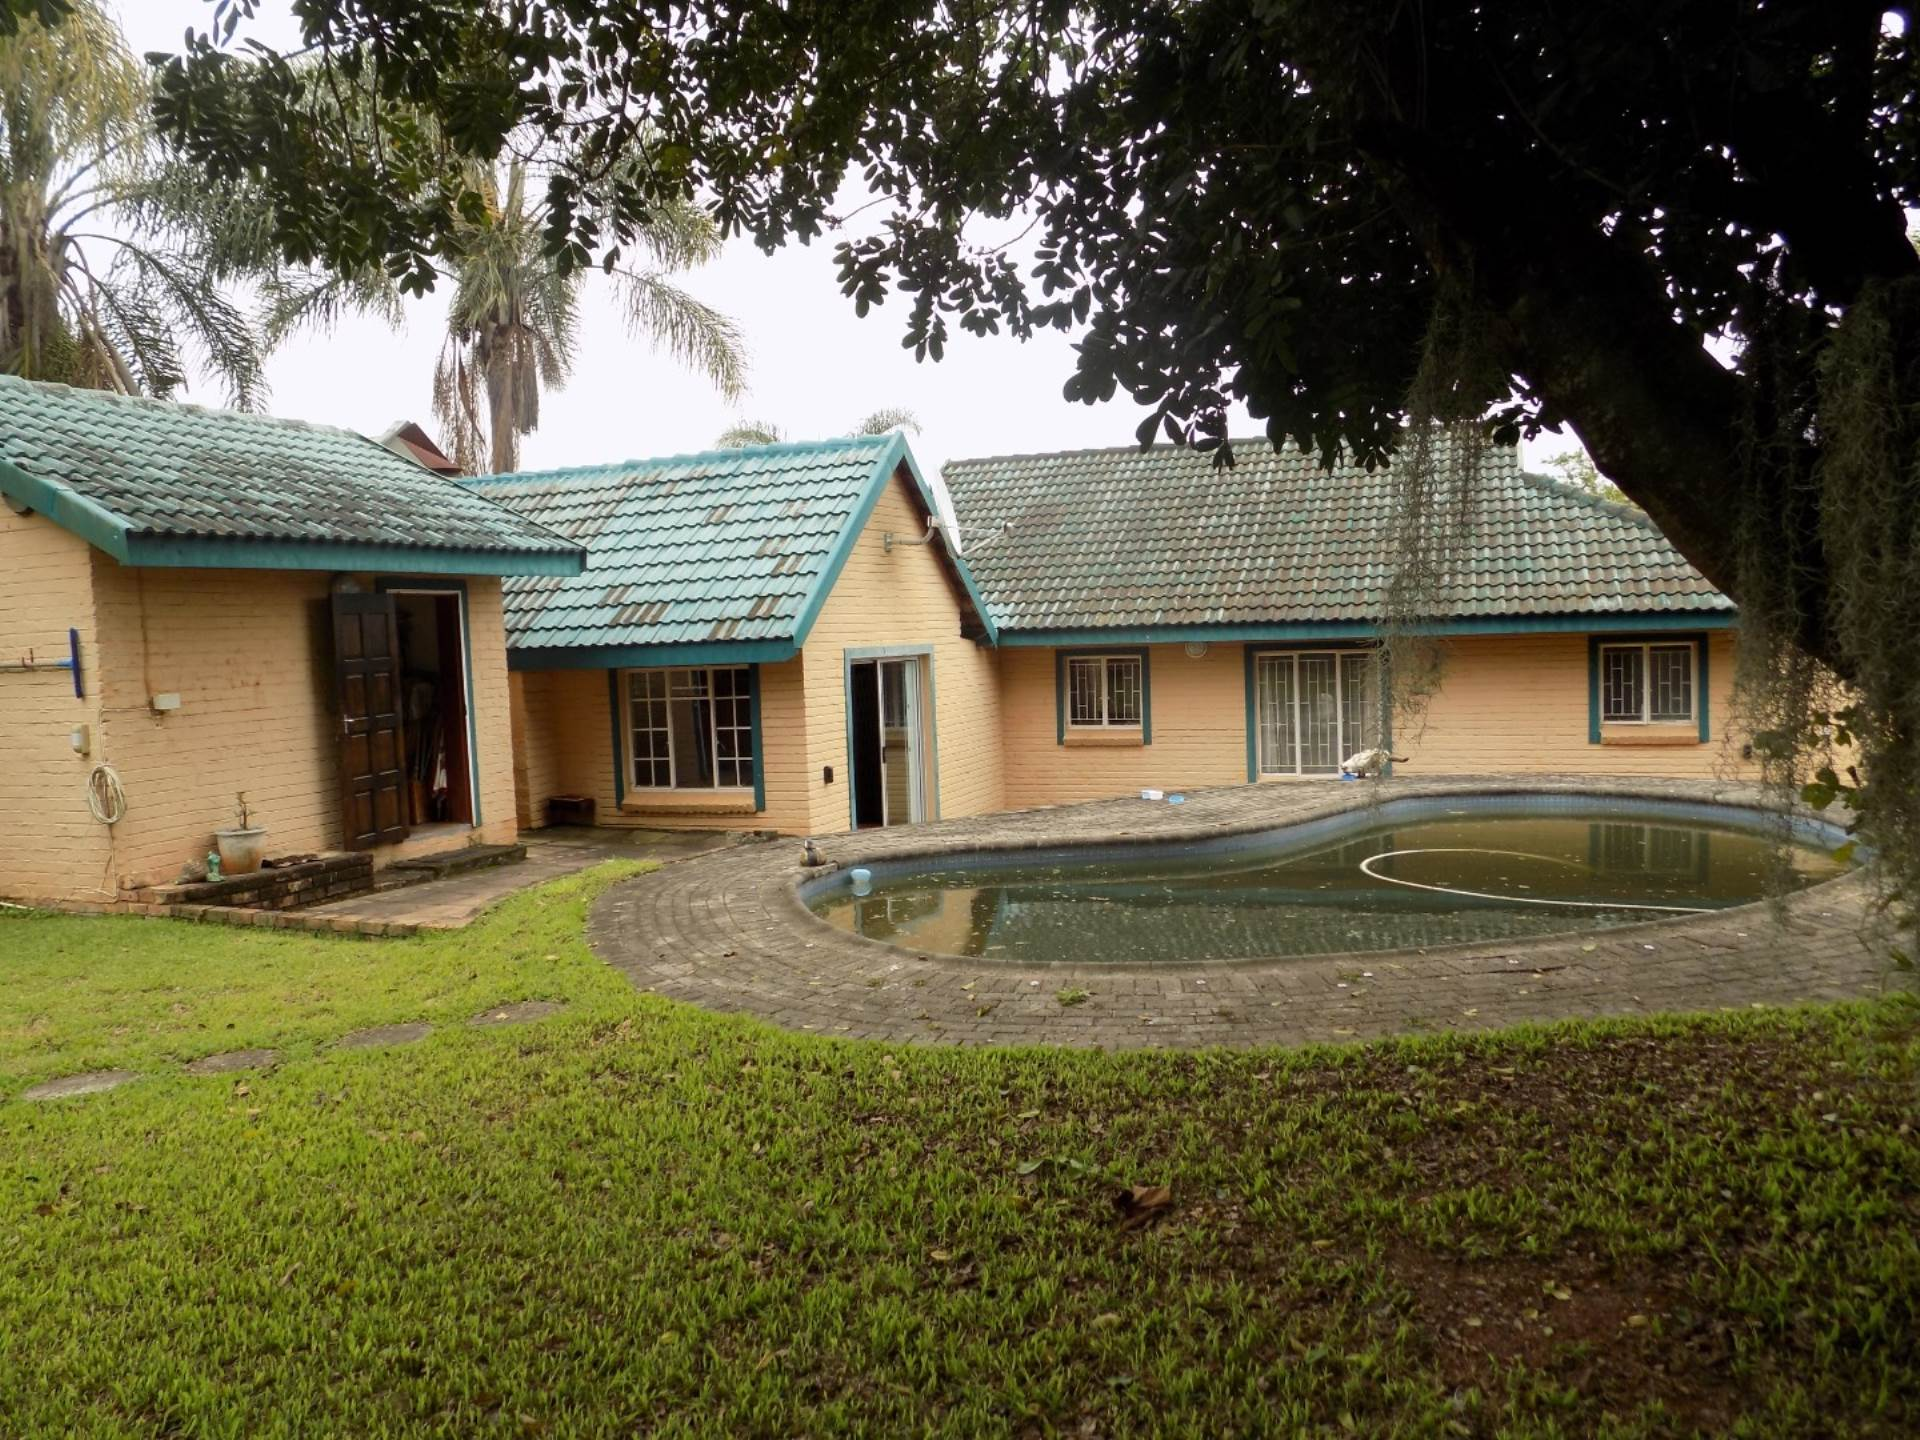 2 BedroomHouse For Sale In Kingsview Ext 2